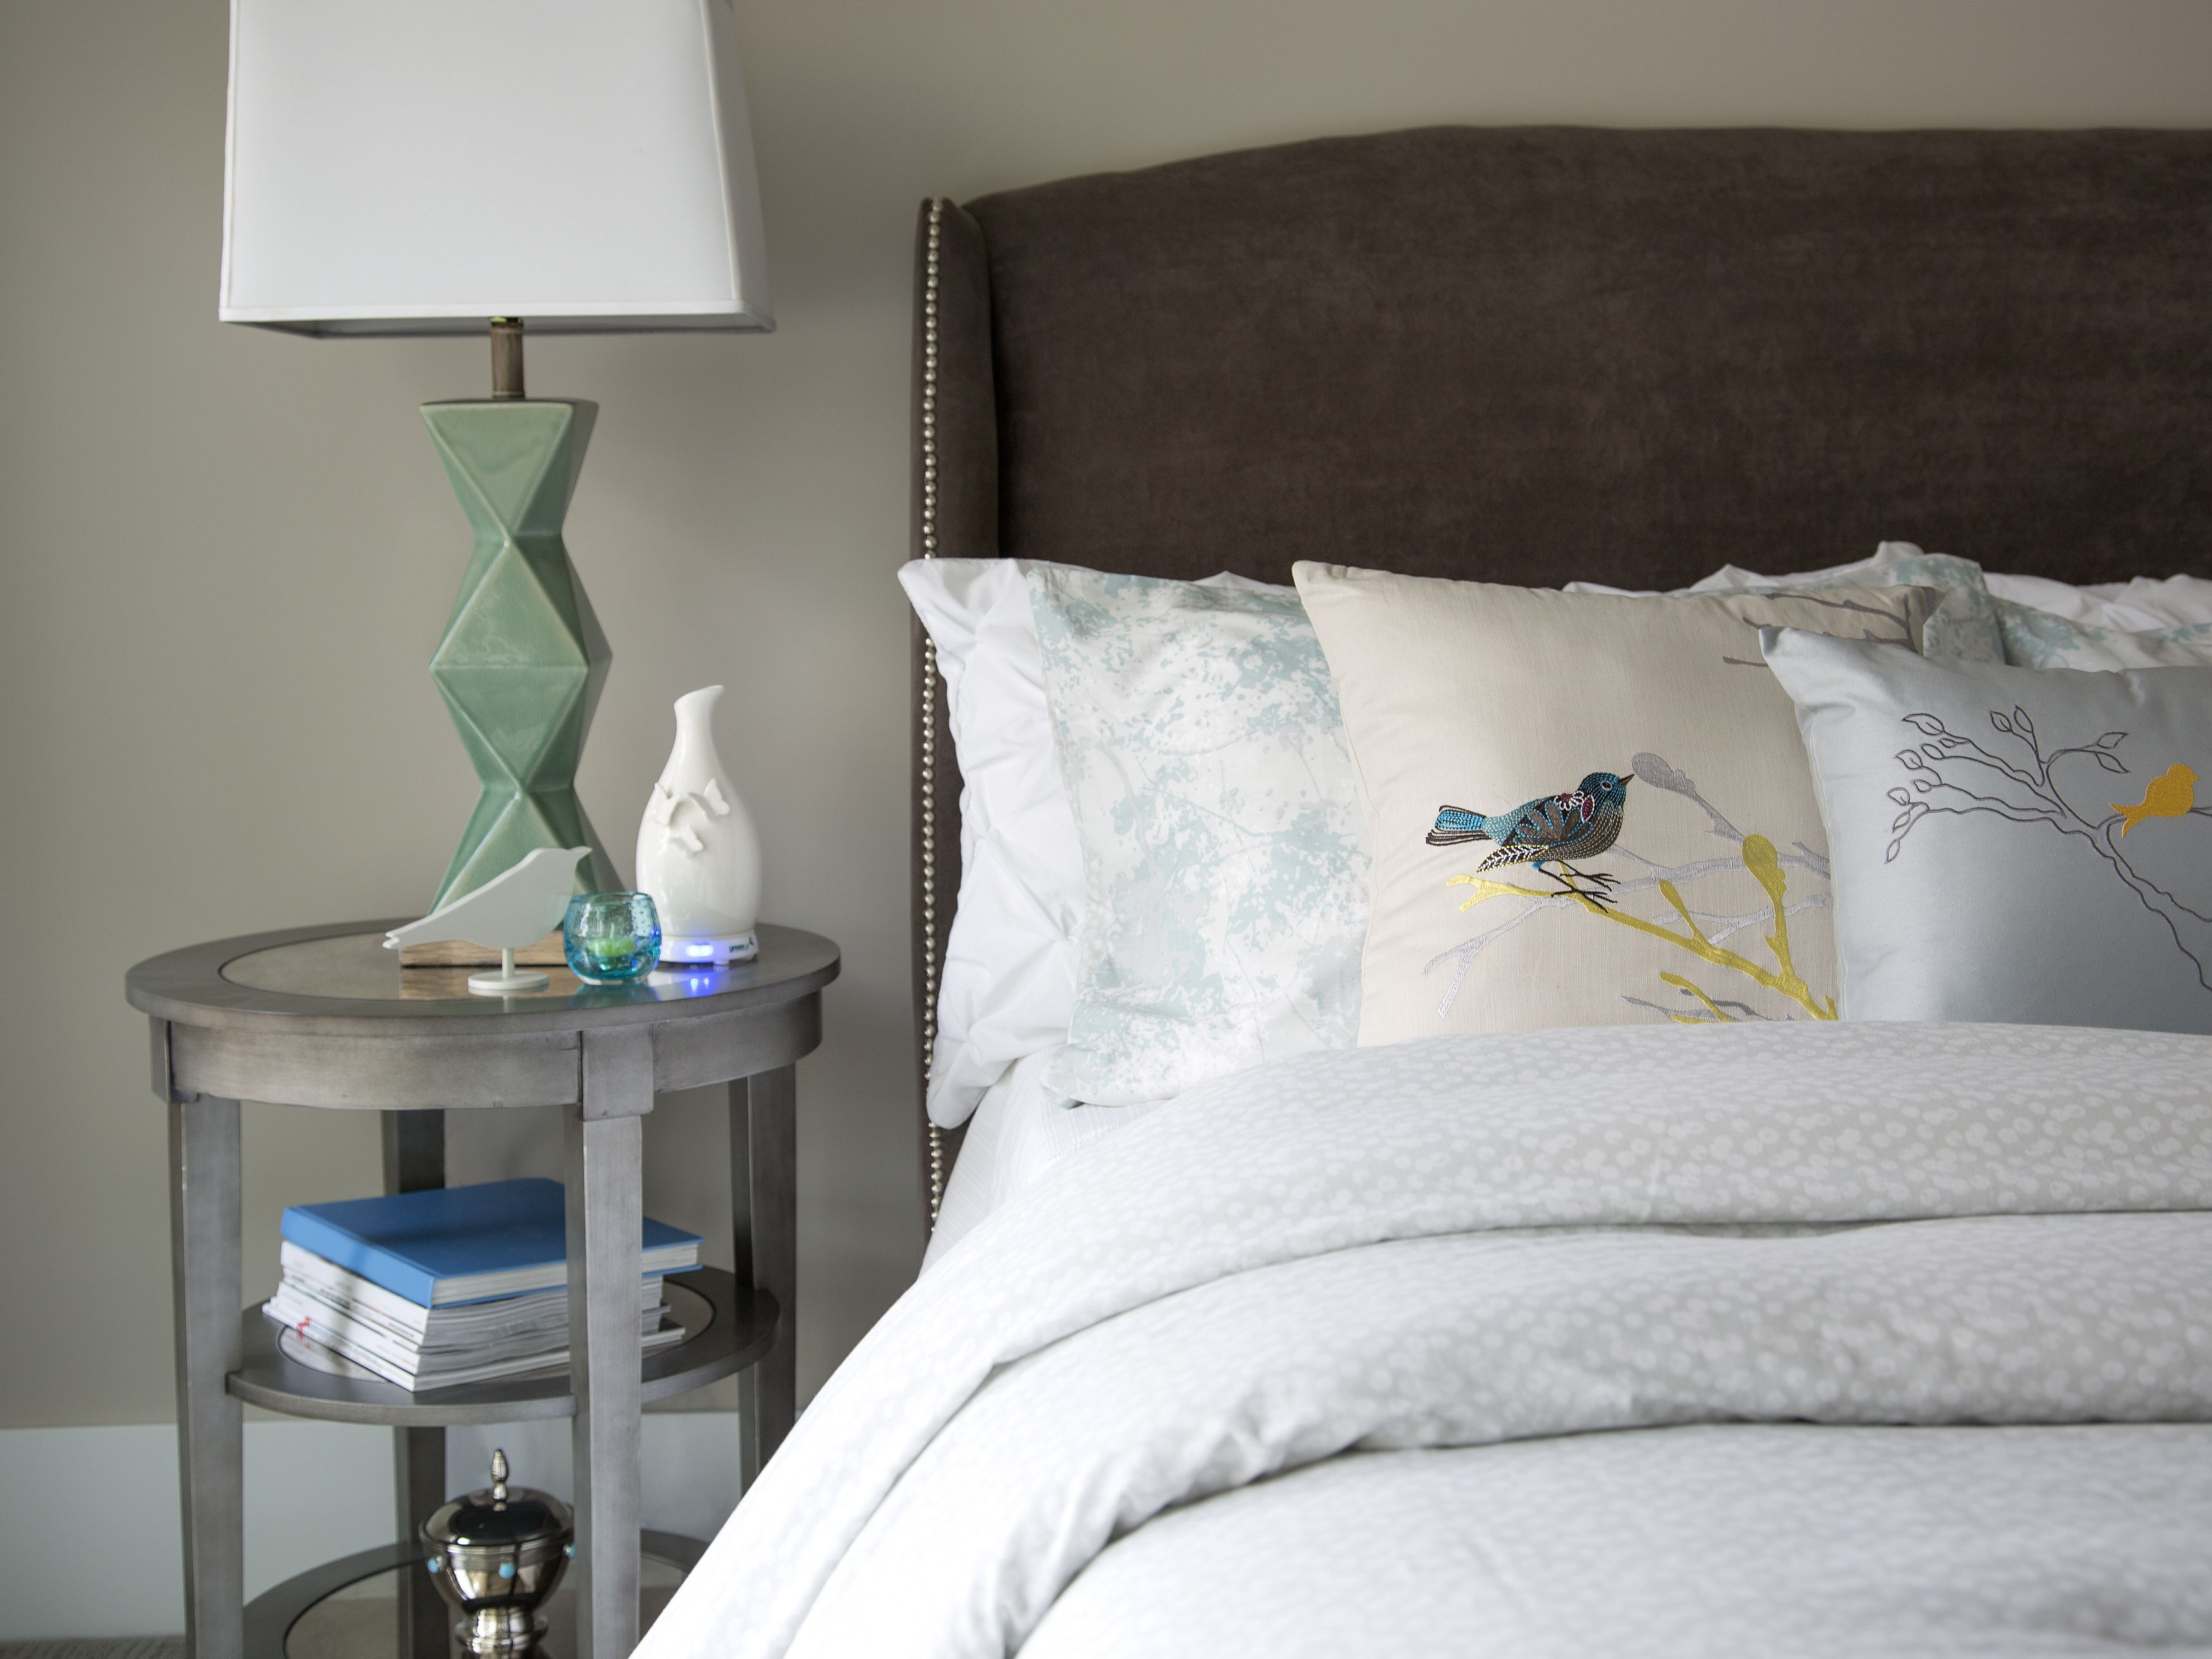 da875045b The 7 Best Wrinkle-Free Sheets of 2019